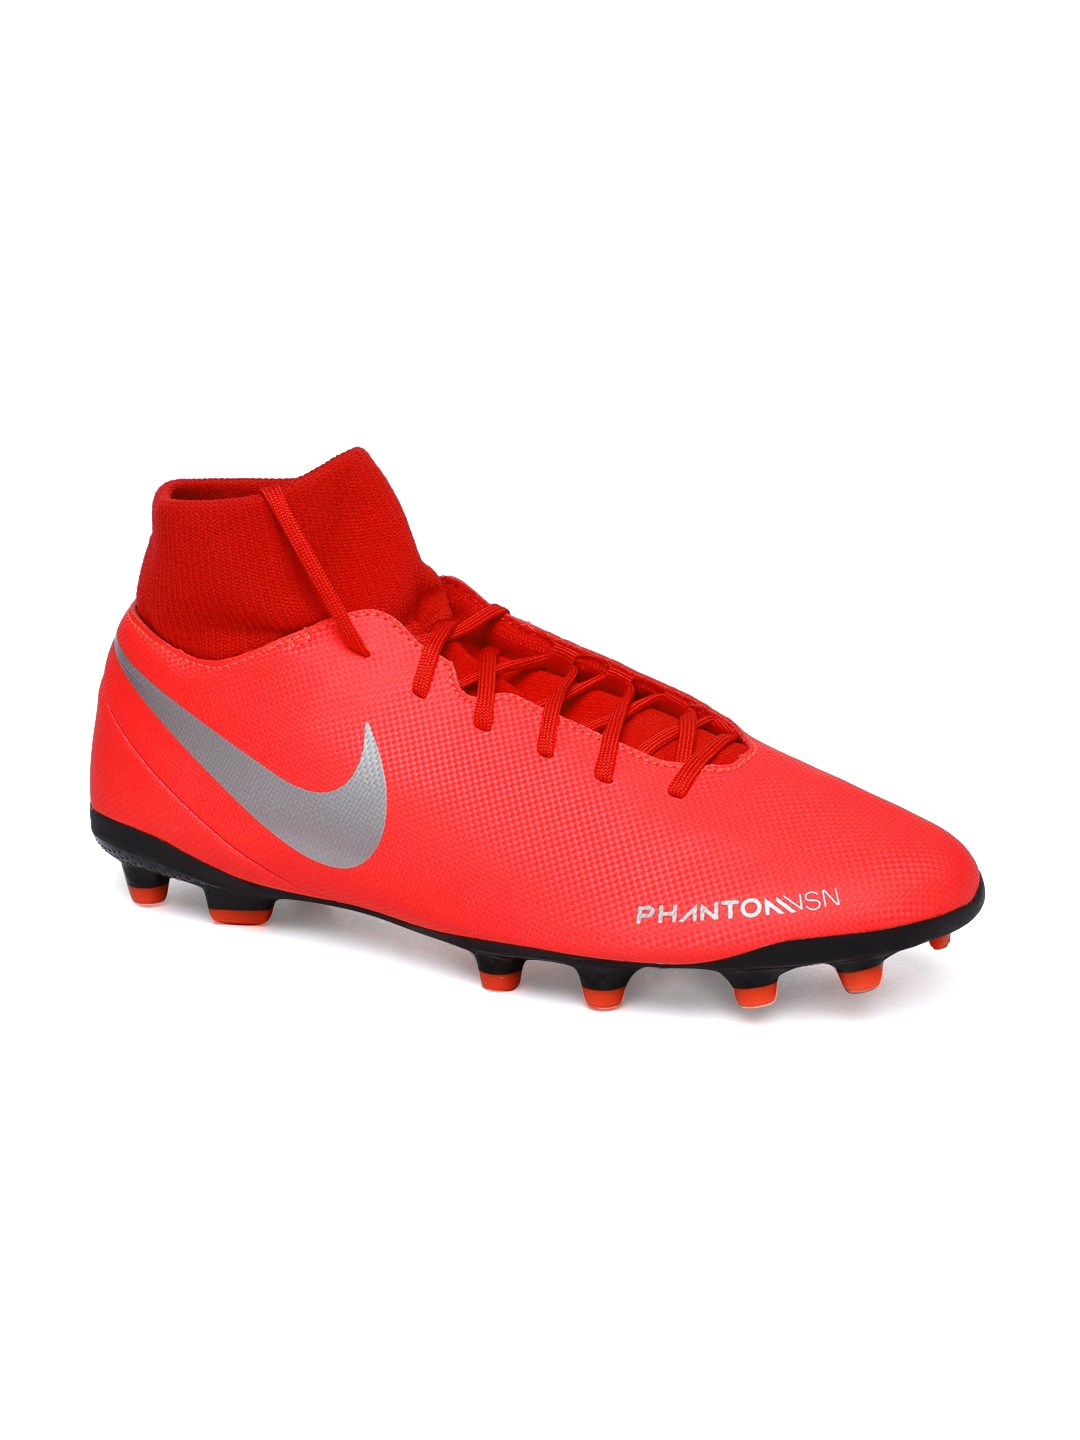 Football Shoes - Buy Football Studs Online for Men   Women in India 34786f73a0d